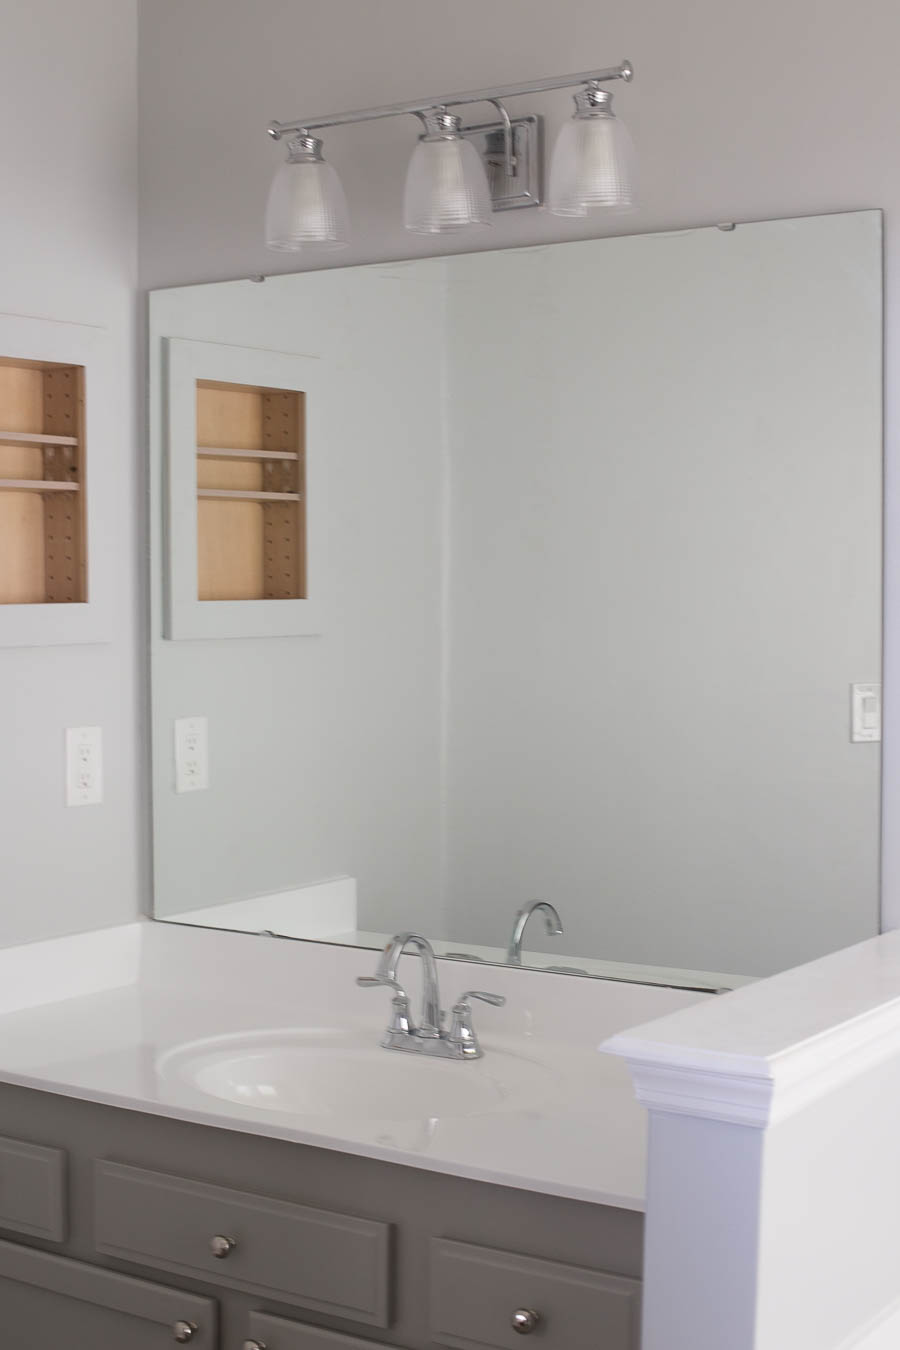 How to frame bathroom mirrors - How To Frame A Bathroom Mirror In An Afternoon For Less Than 40